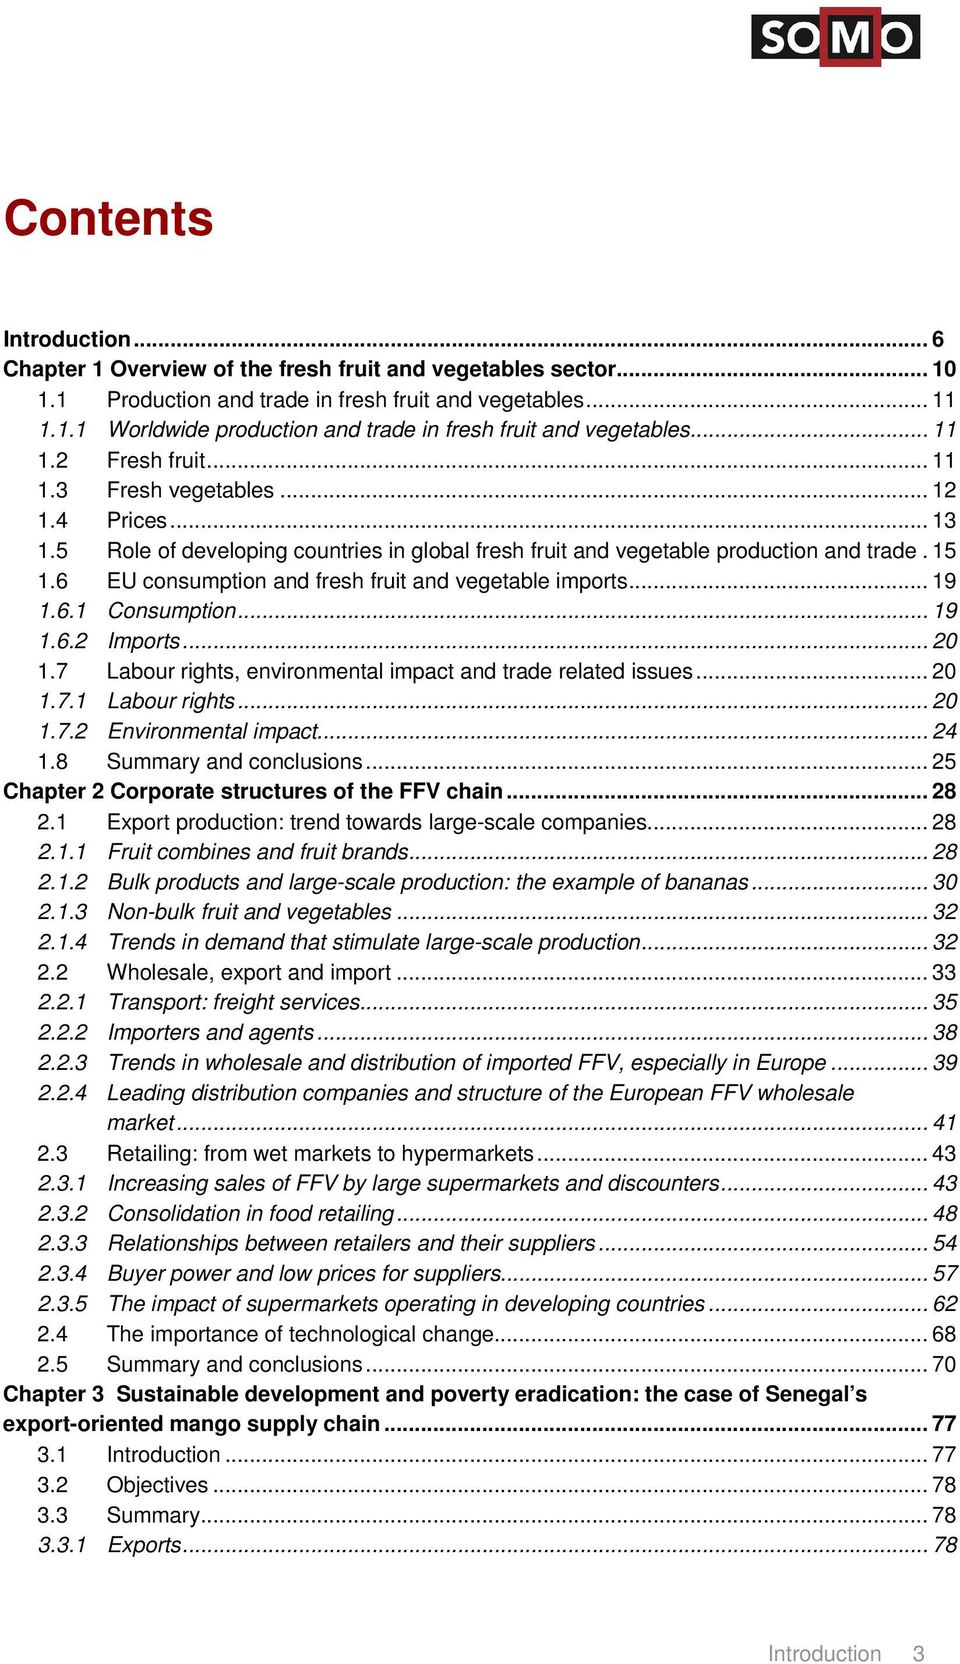 6 EU consumption and fresh fruit and vegetable imports... 19 1.6.1 Consumption... 19 1.6.2 Imports... 20 1.7 Labour rights, environmental impact and trade related issues... 20 1.7.1 Labour rights.